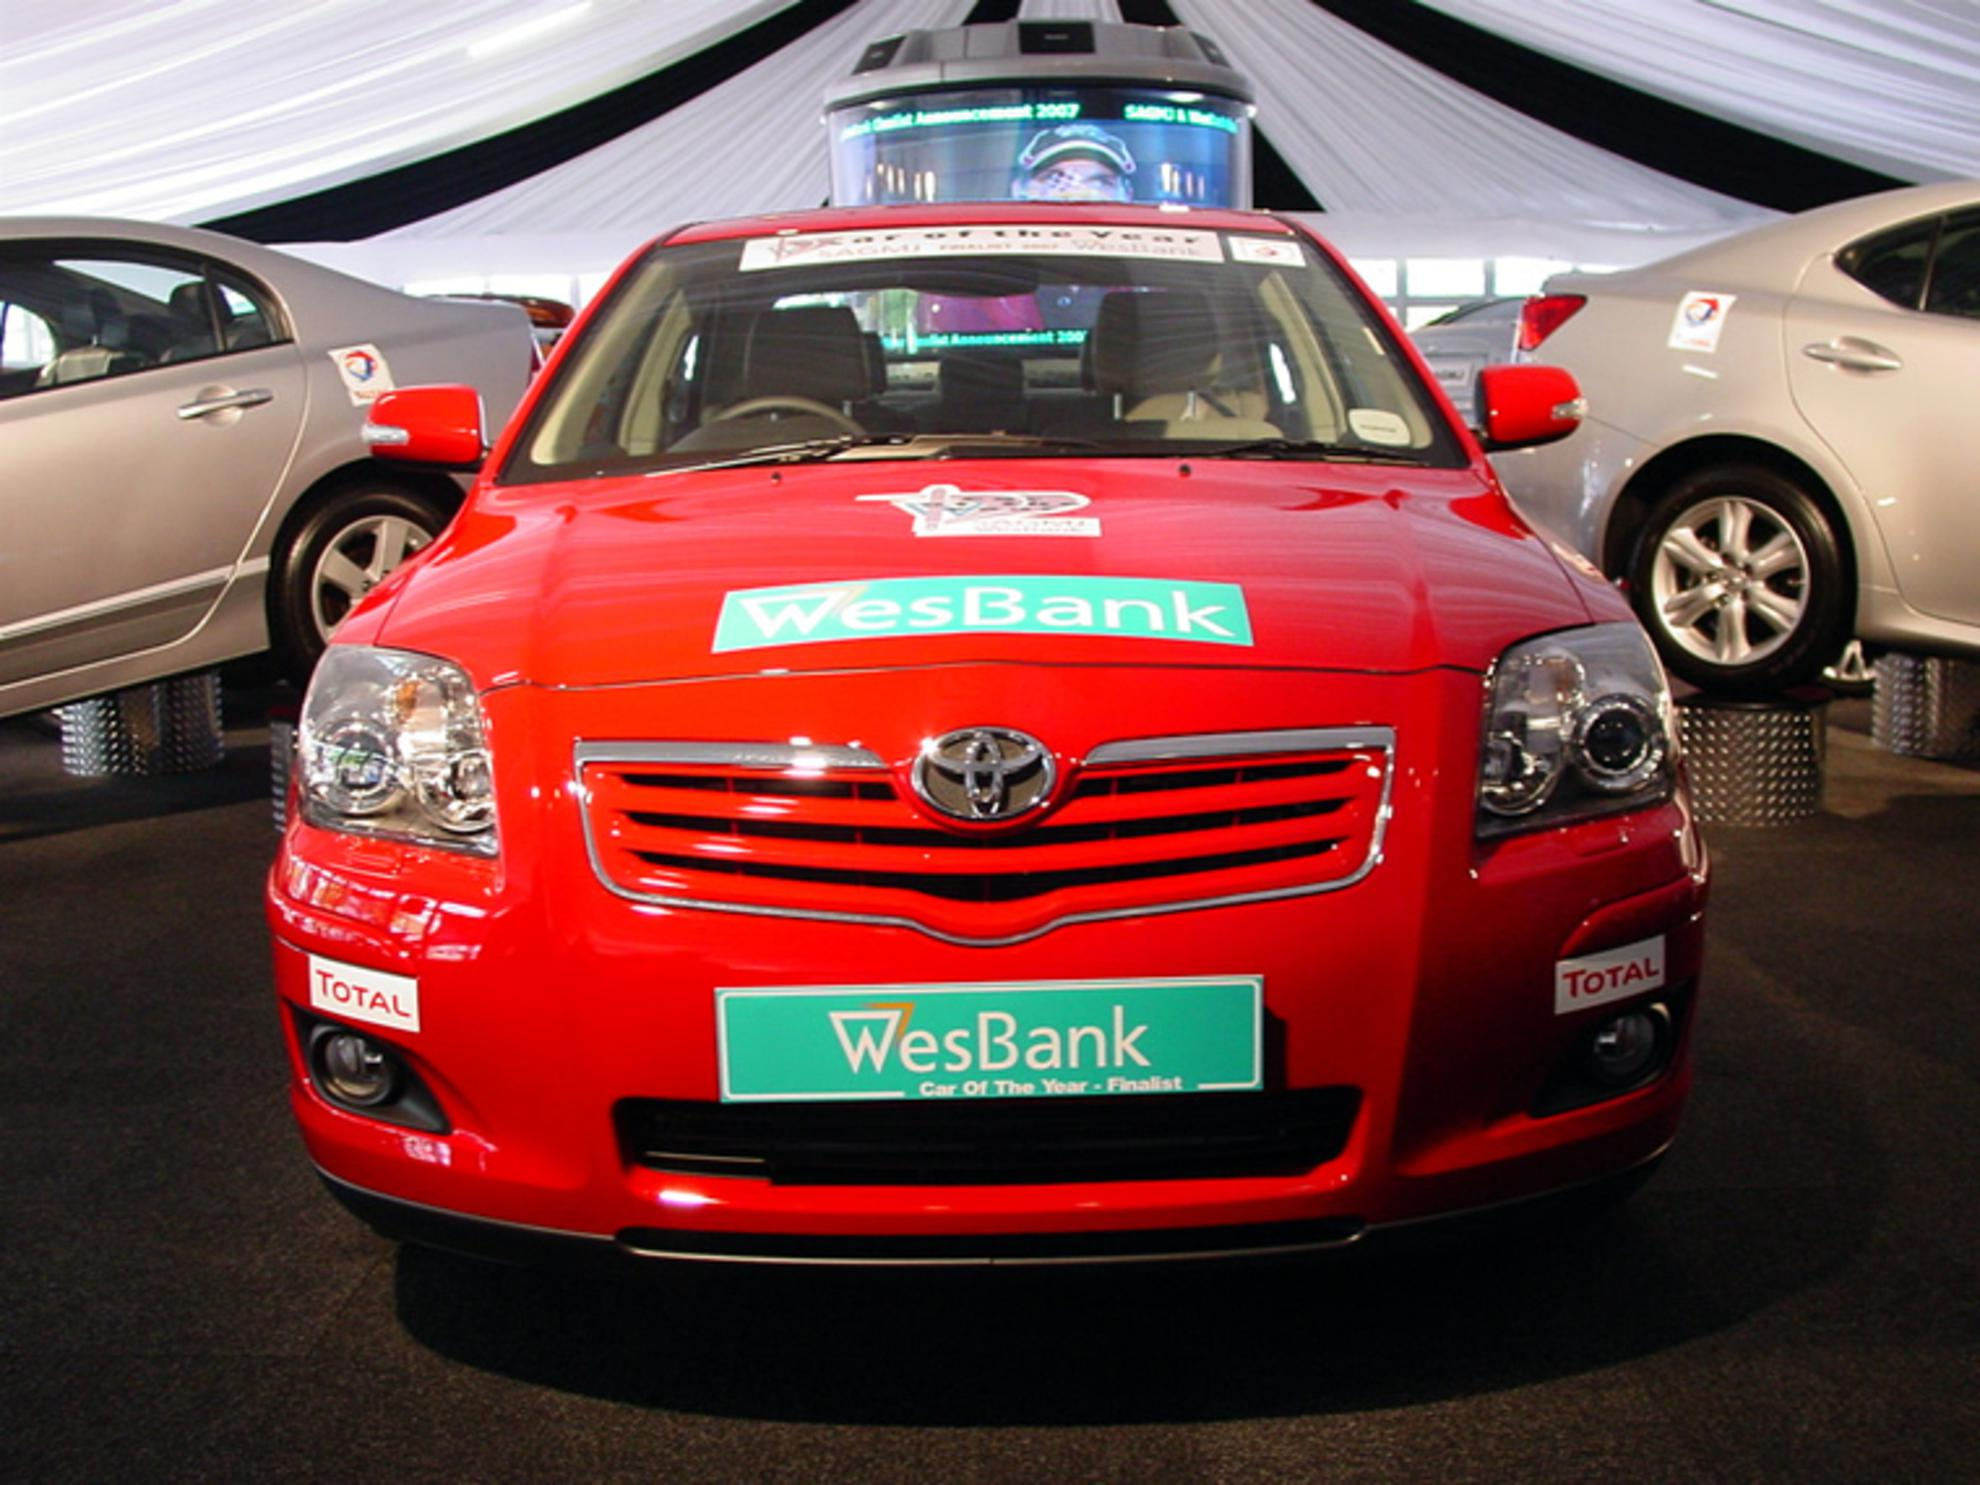 Wesbank Car of the Year 2006